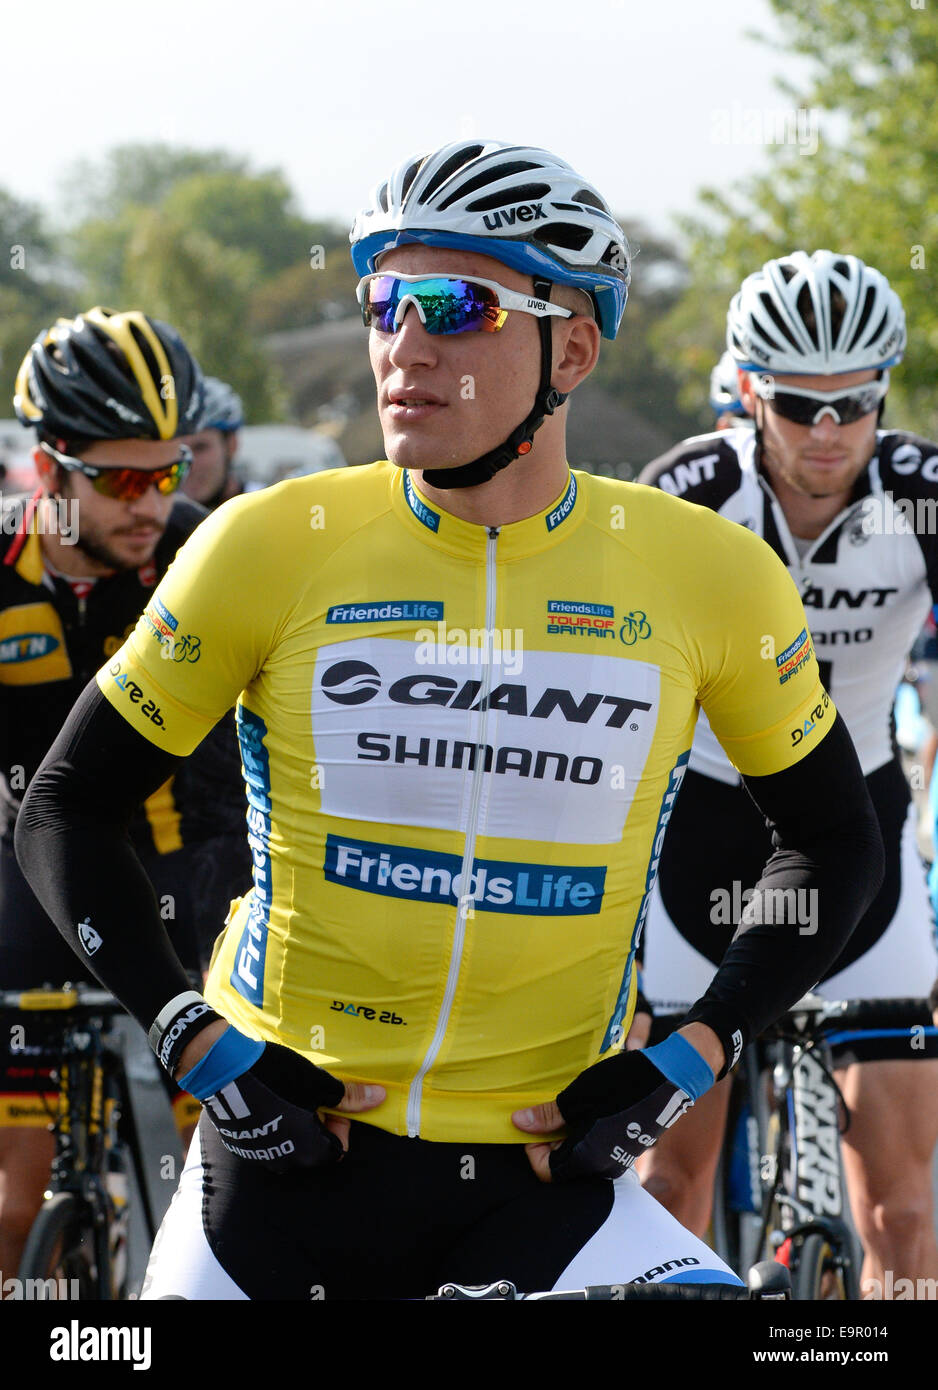 Marcel Kittel of Giant Shimano pictured at the start of the second stage of the Tour of Britain in Knowsley - Stock Image